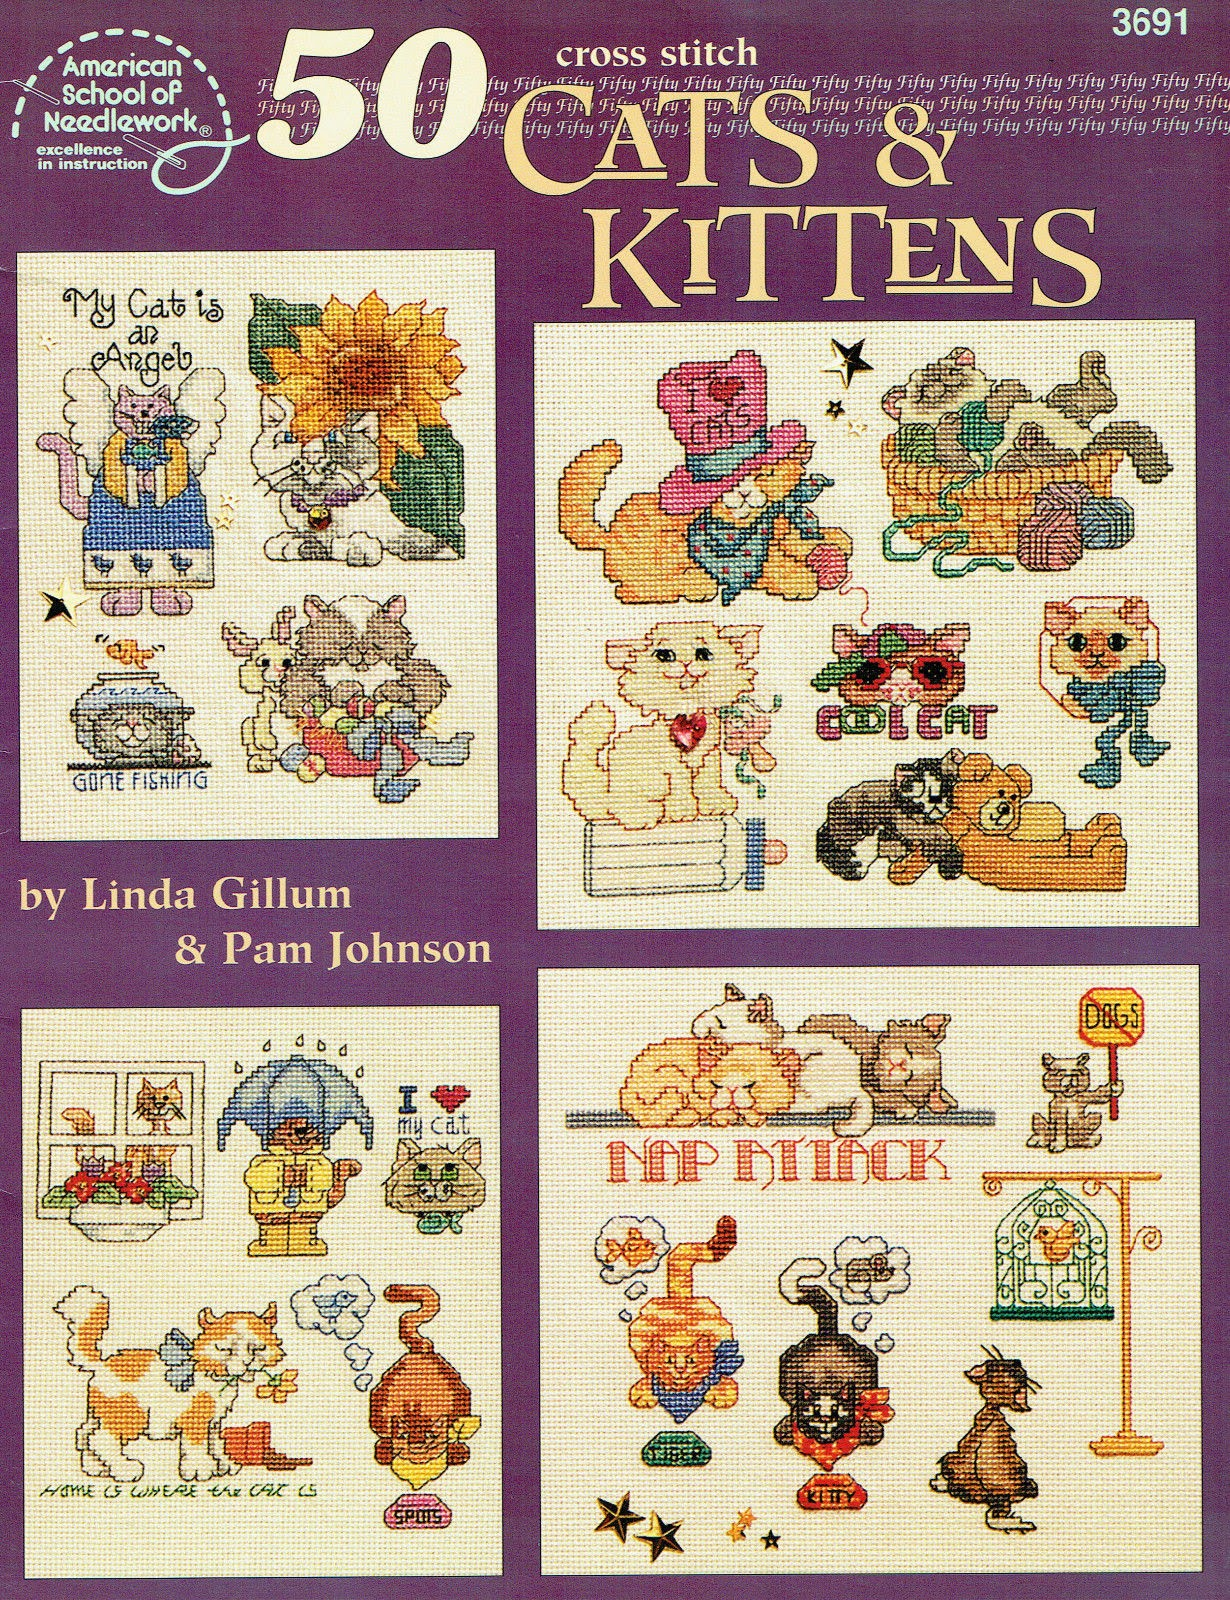 http://www.ebay.com/itm/Cross-stitch-Pattern-Book-50-Cats-and-Kittens-Linda-Gillum-Pam-Johnson-/321688825867?pt=LH_DefaultDomain_0&hash=item4ae625f00b